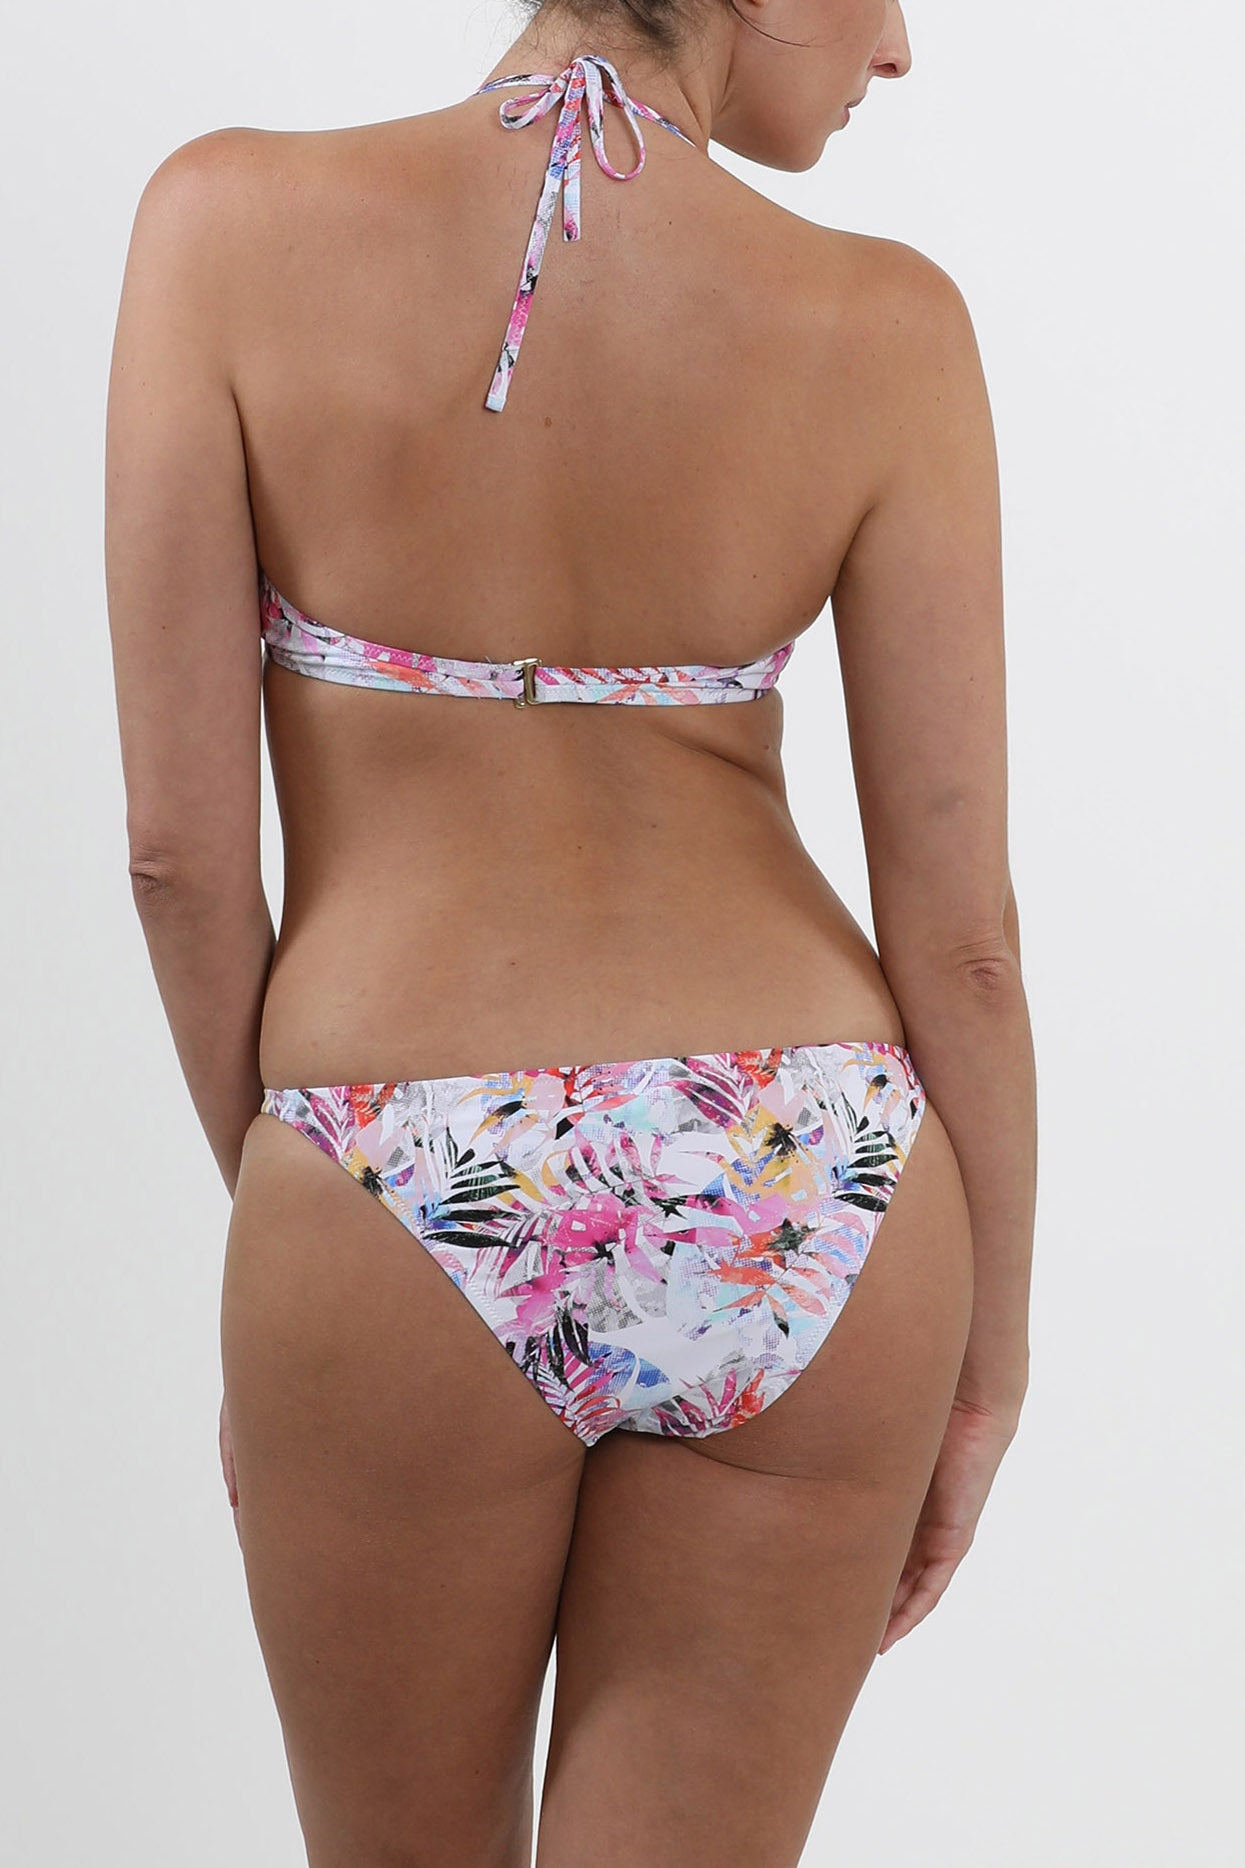 Set 13 Rimini Push Up Top- Vivid Palms and Cape Town bottom - Vivid Palms swimwear bikini set